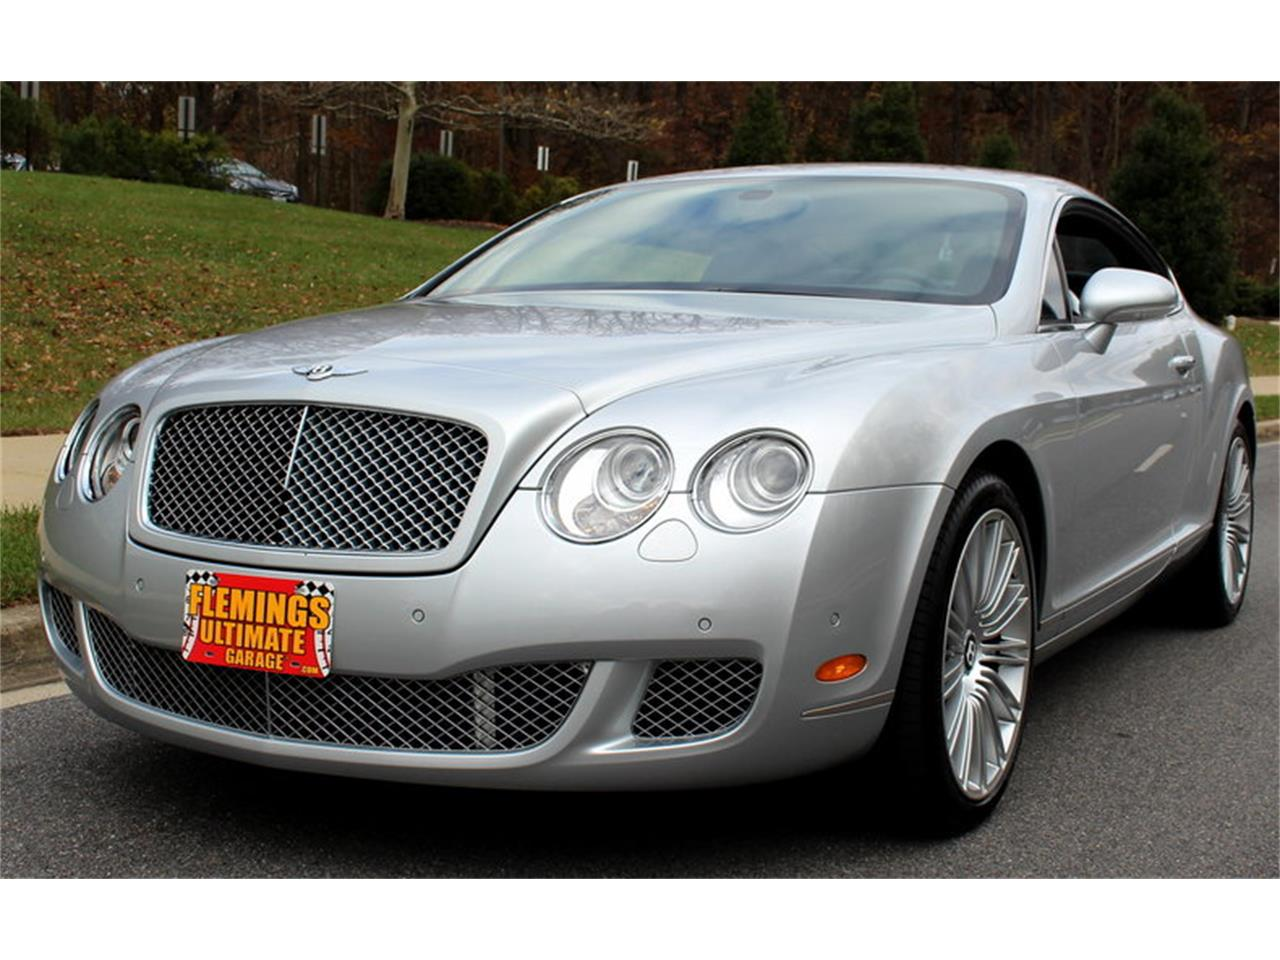 Large Picture of '08 Continental located in Rockville Maryland Offered by Flemings Ultimate Garage - MDEM